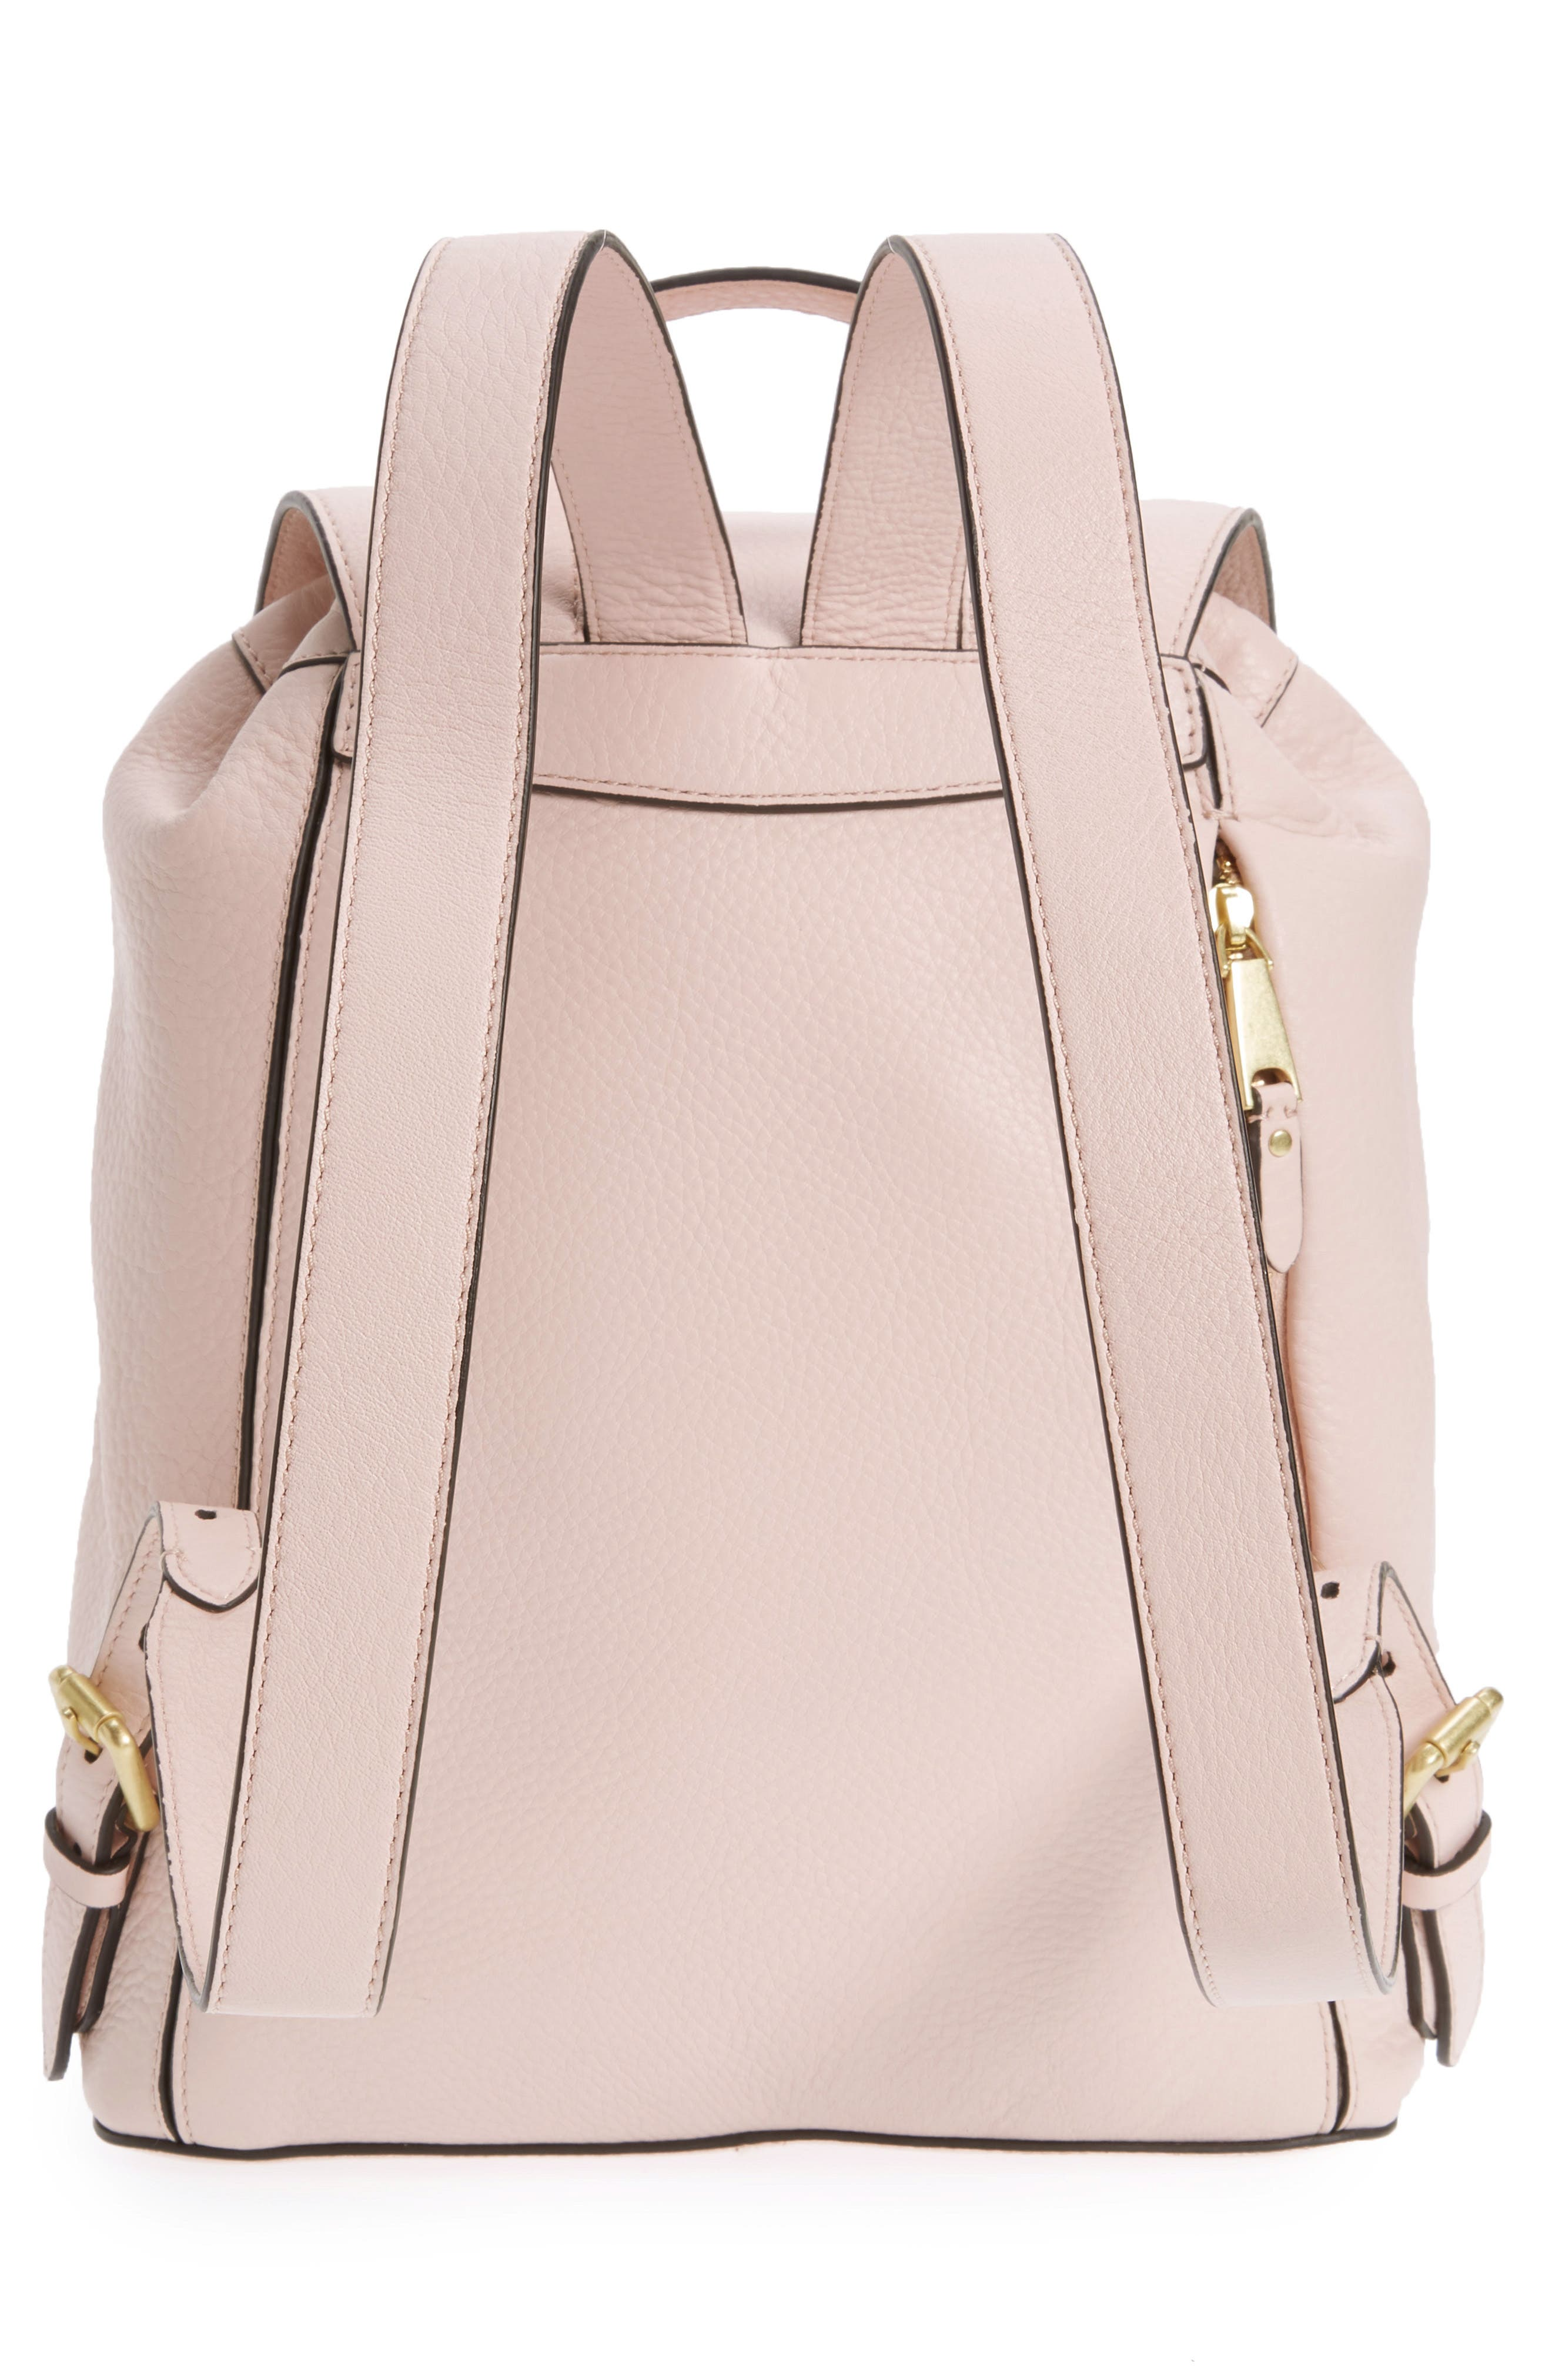 Cassidy RFID Pebbled Leather Backpack,                             Alternate thumbnail 4, color,                             Peach Blush